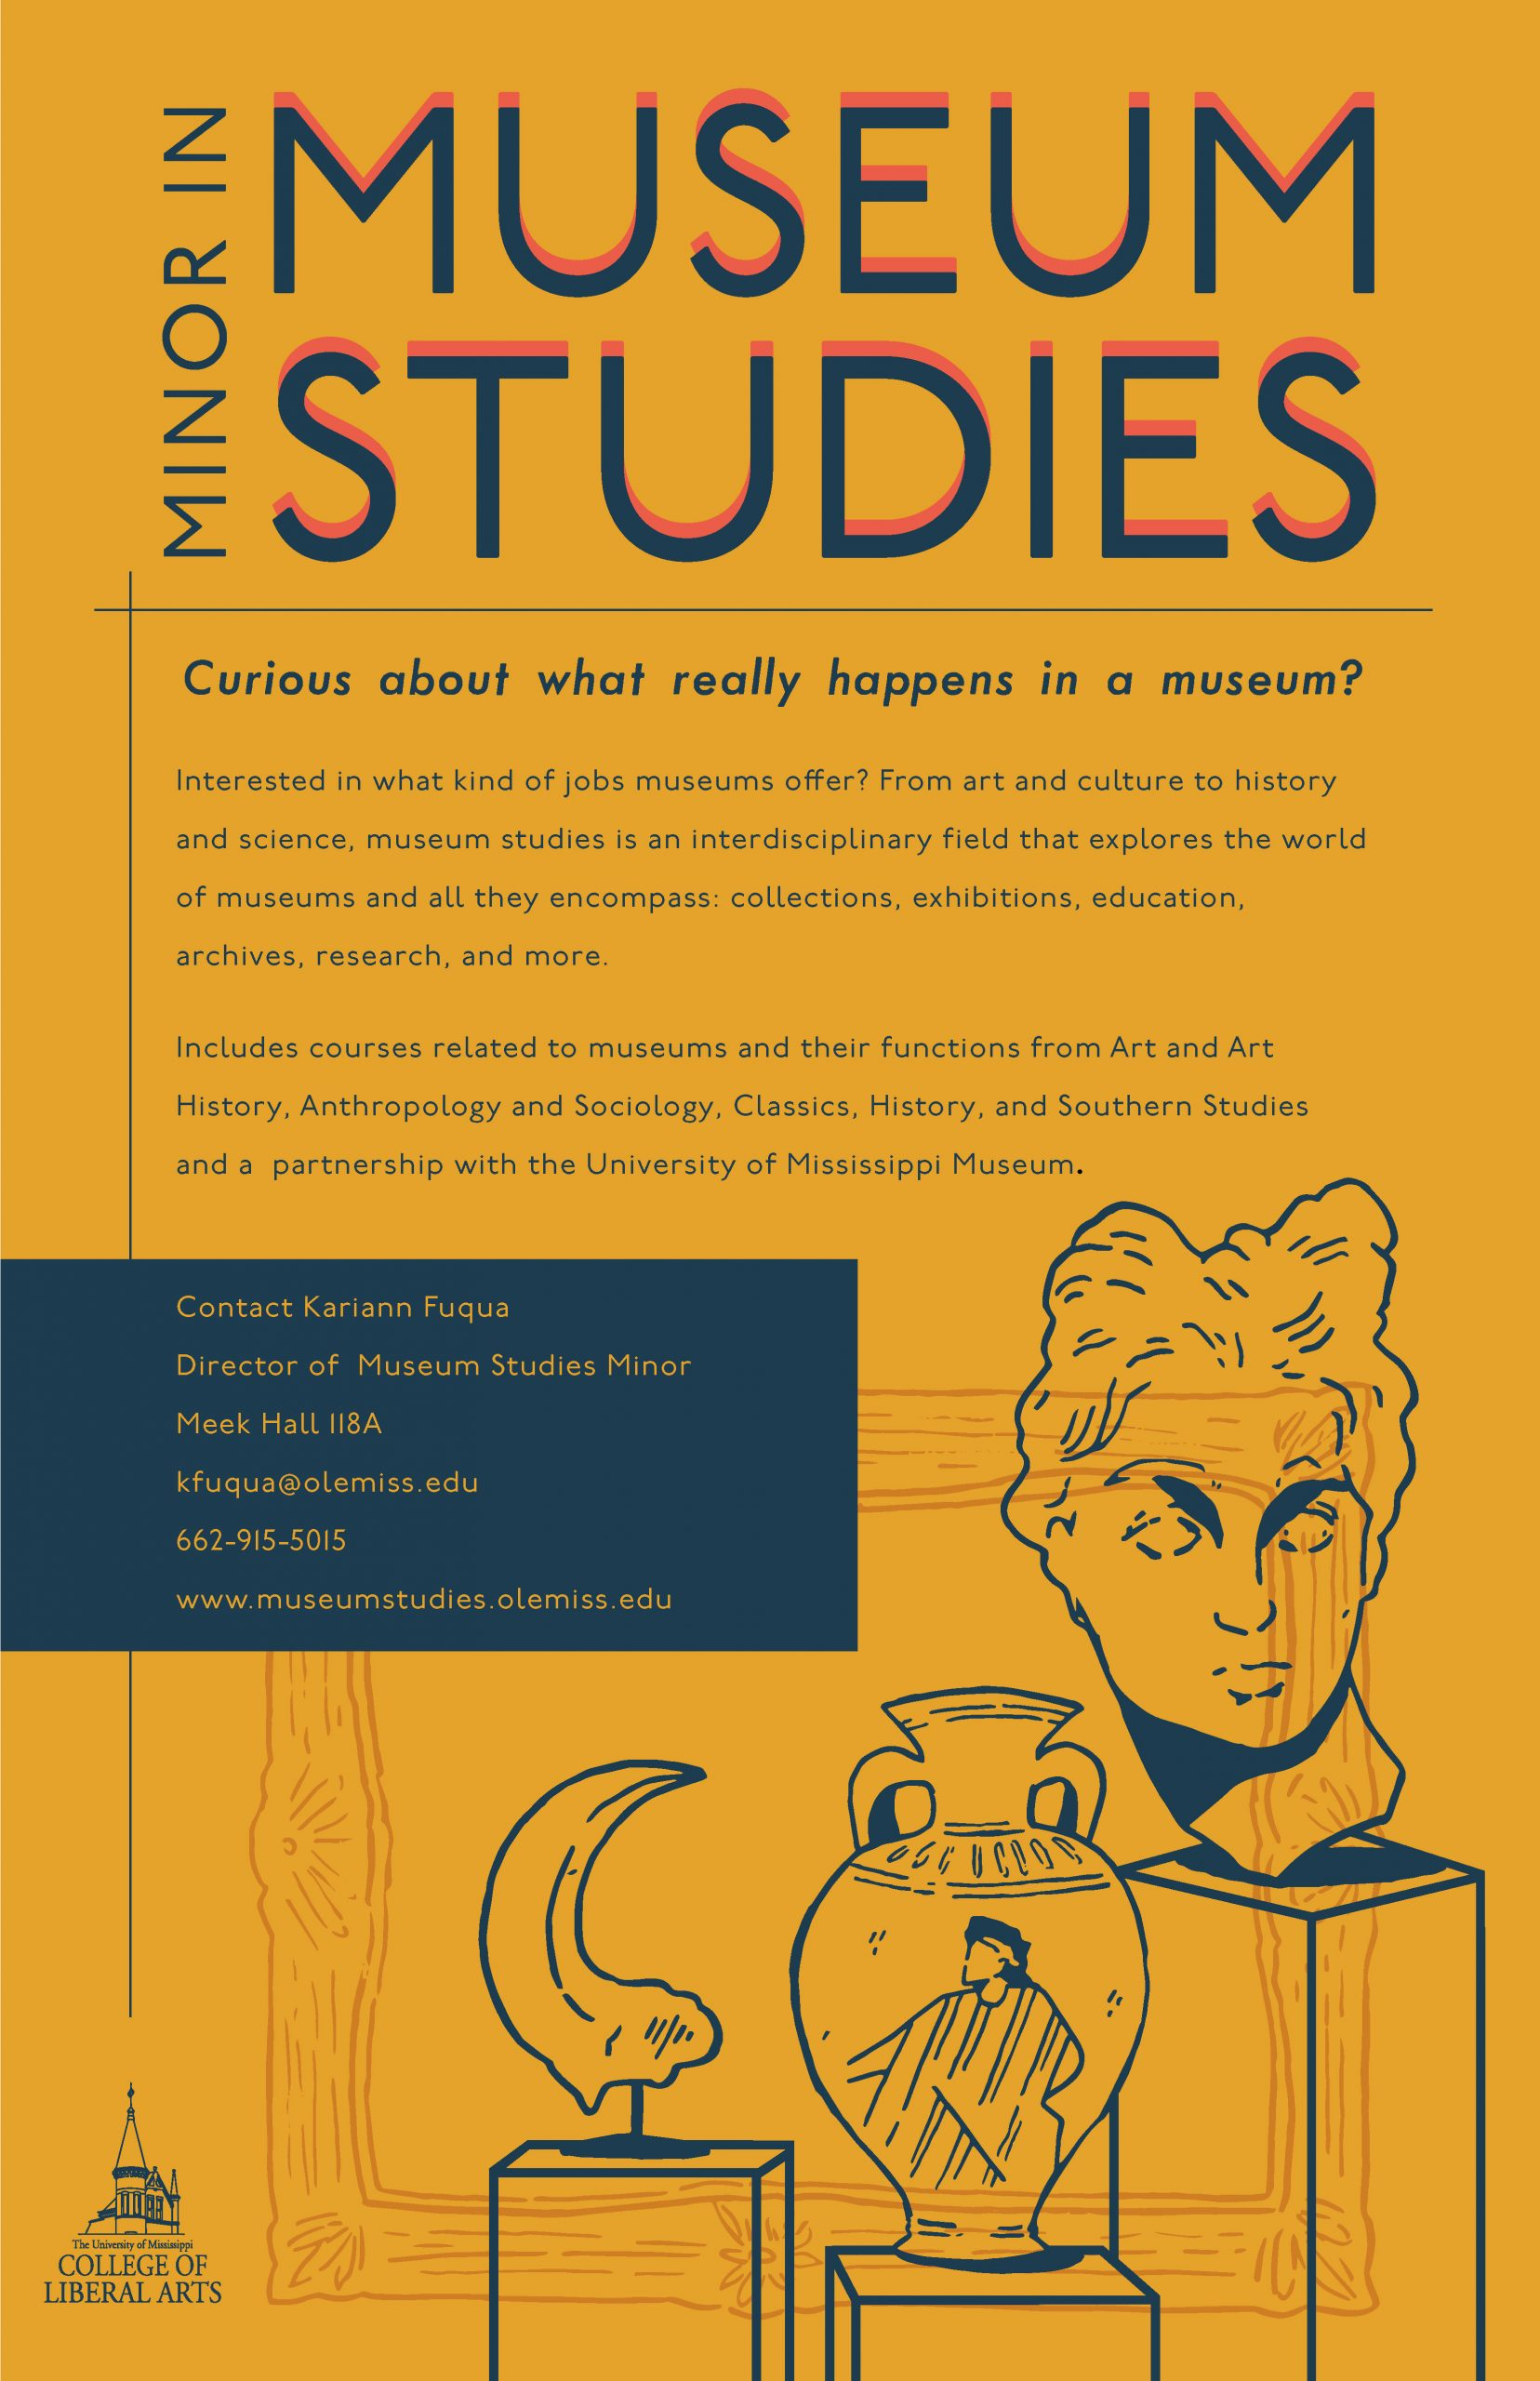 Learn more about the Minor in Museum Studies